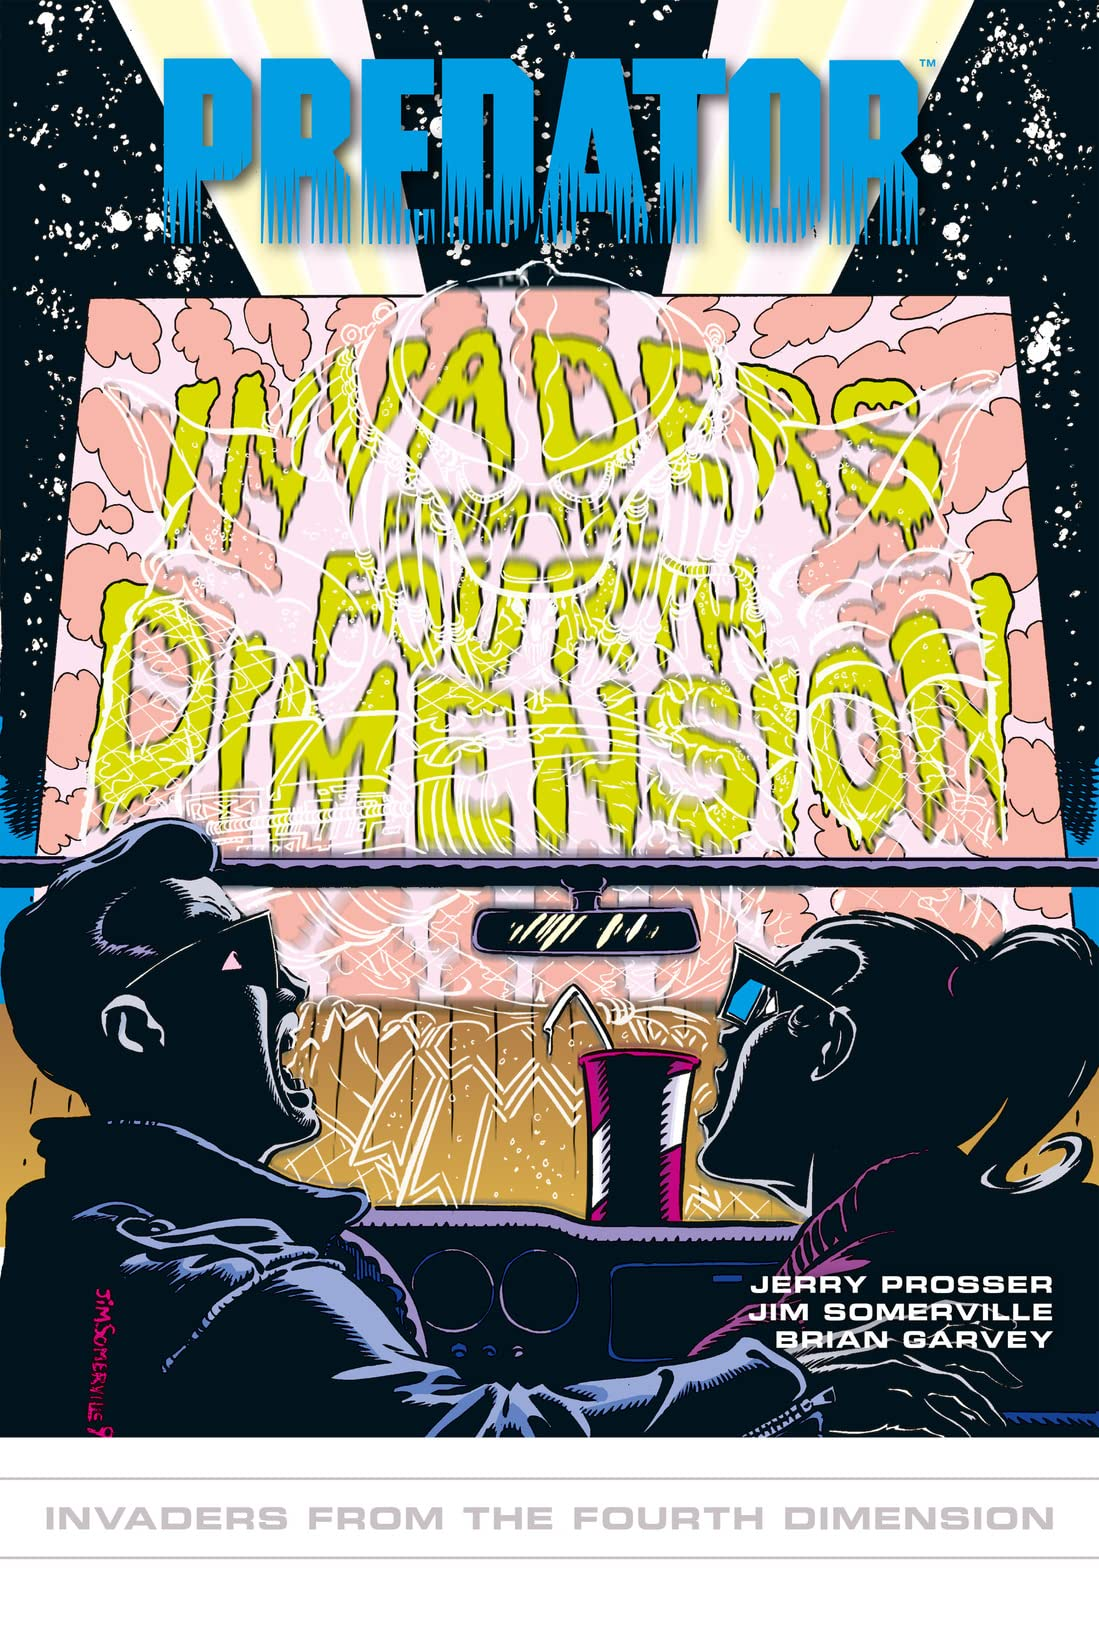 Predator: Invaders of the 4th Dimension #11